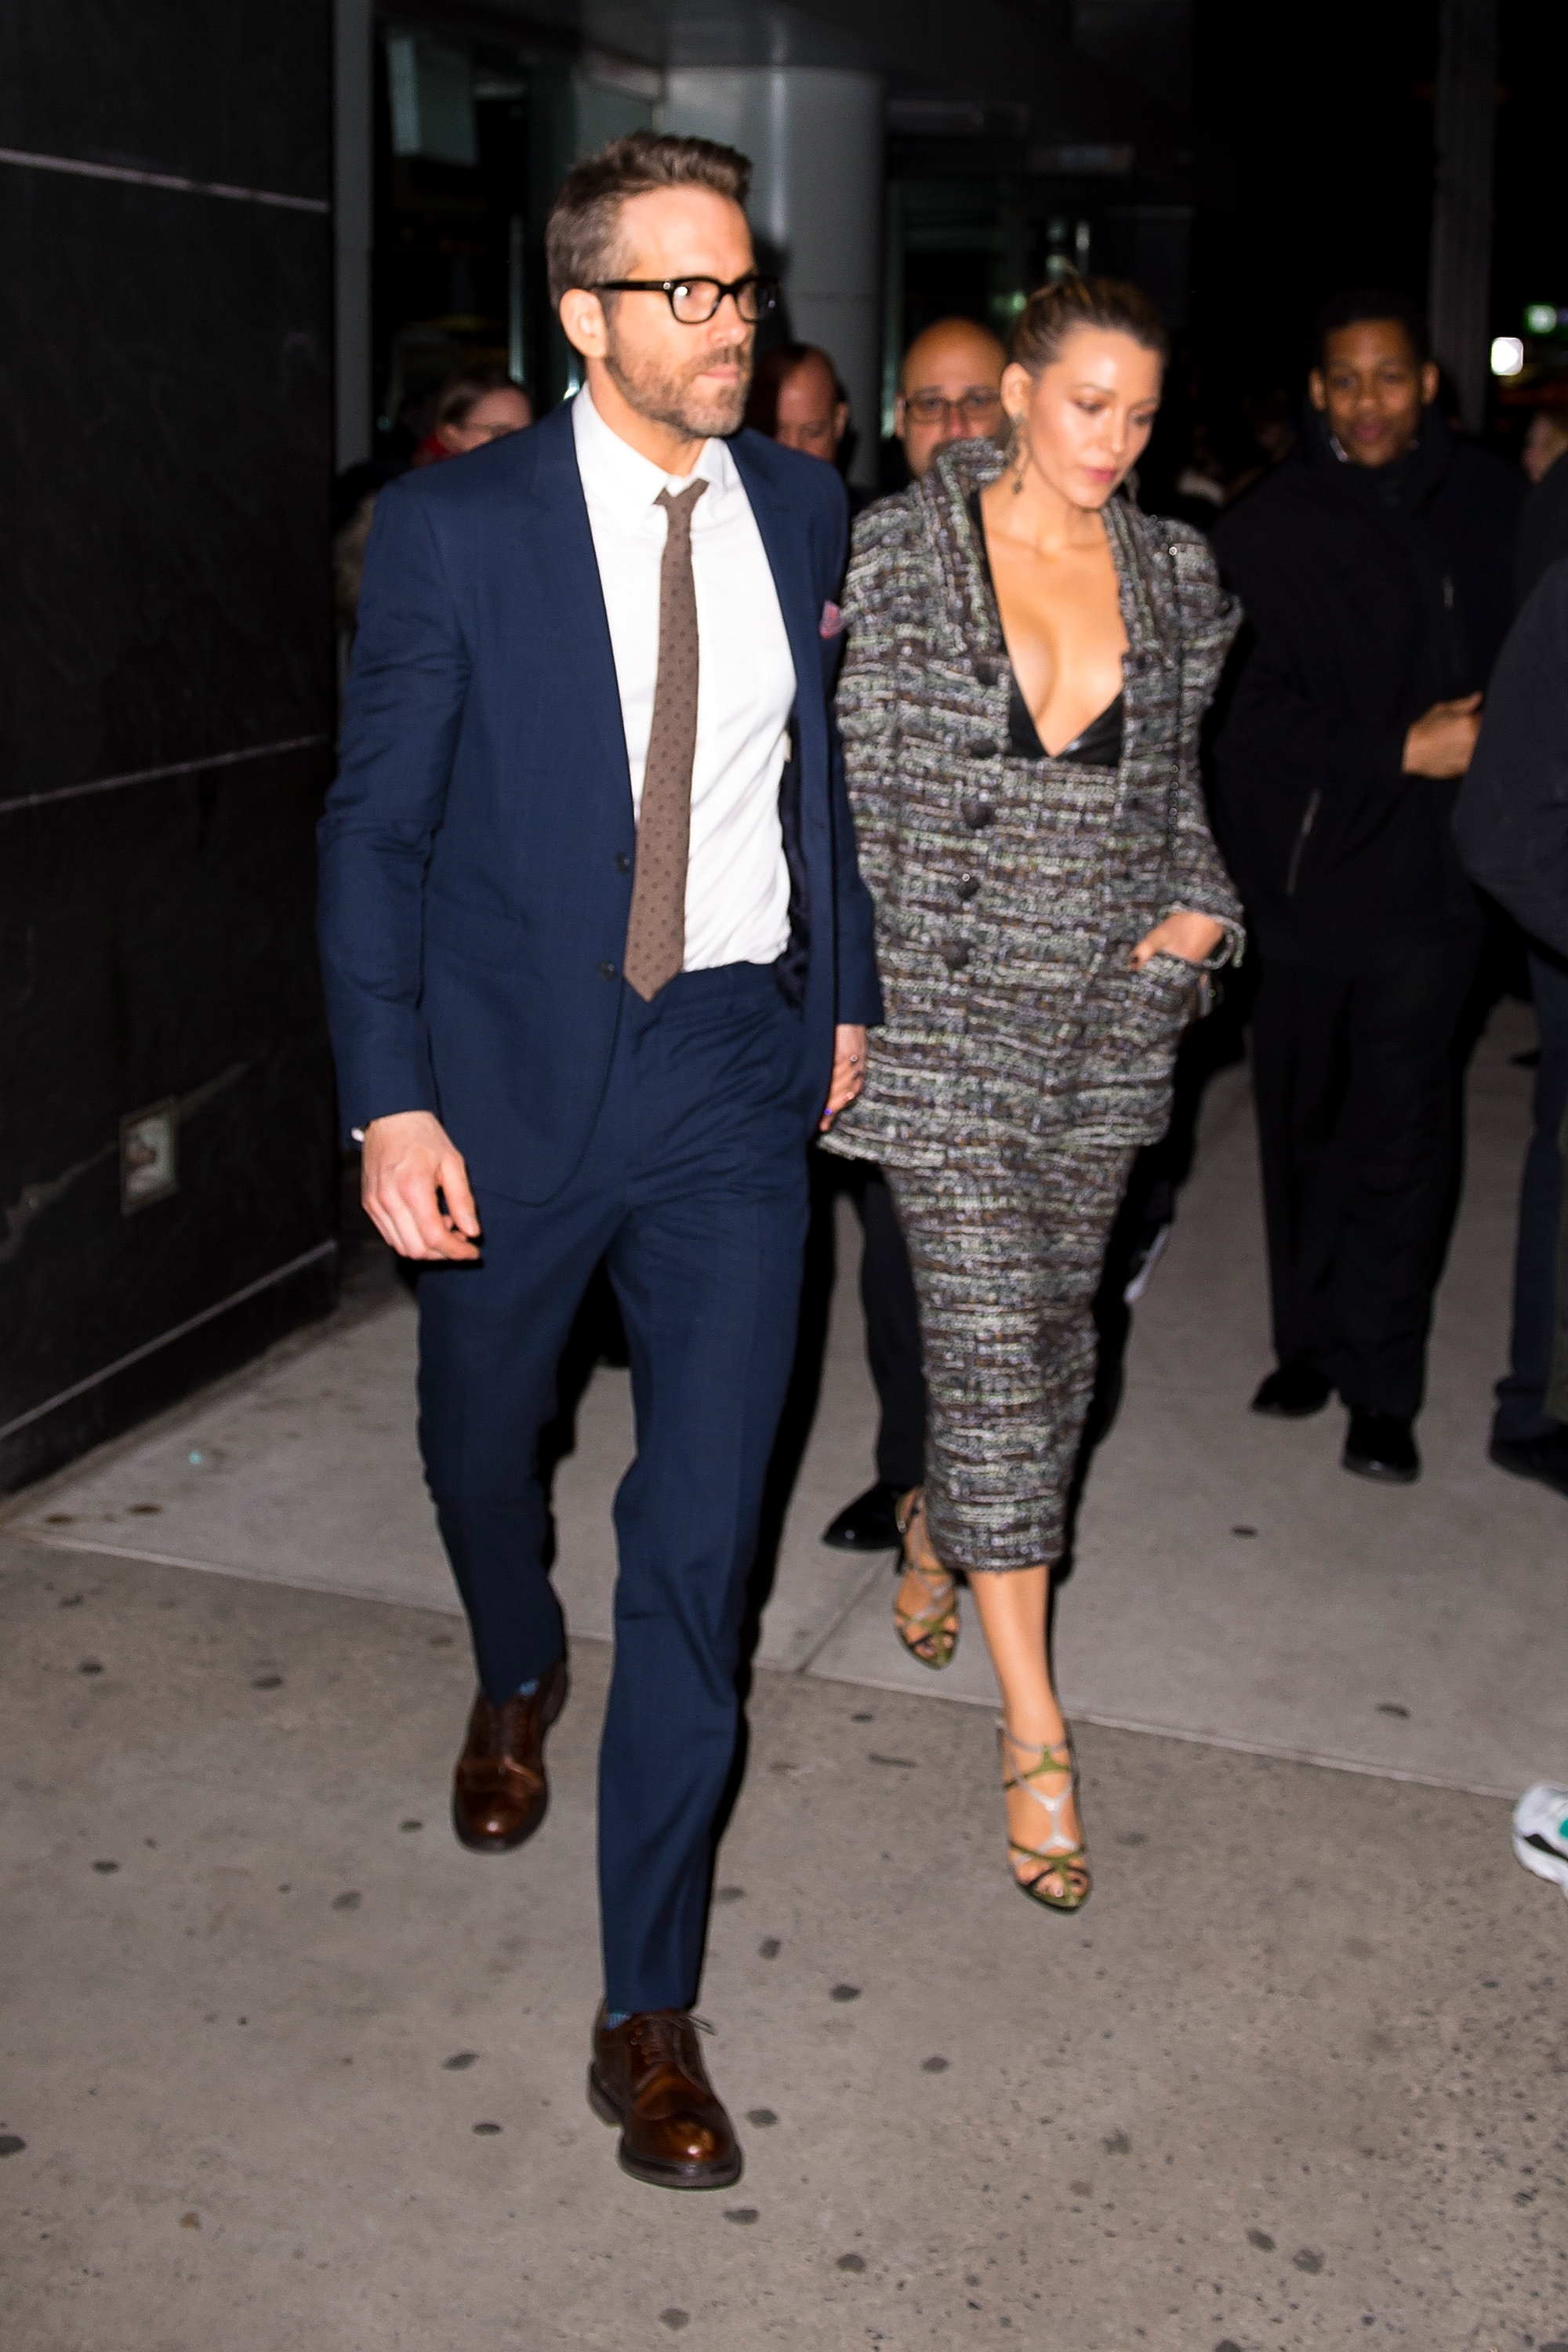 <p>There's no mistaking a power couple, especially one that knows how to dress.<br /> <br /> Point in case, Ryan Reynolds and Blake Lively. The fashion-forward pair made a strong case for a matching look  as they stepped out in matching suits at the premiere of <em>A Quiet Place</em> last night.<br /> <br /> With Lively clad in a co-ordinating ensemble by Chanel Haute Couture and Reynolds in a classic navy windowpane suit with a crisp white shirt, the couple transformed themselves into a modern-day JFK and Jackie O. <br /> <br /> The actors aren't the only high-profile pair to favour a twinning look. Whether they're Hollywood superstars, sport stars or fashion industry powerhouses, many style-savvy A-list couples haven't been afraid to make a splash in his-and-her suits.</p> <p> Click through to see the A-list couples who have suited up in style.</p>